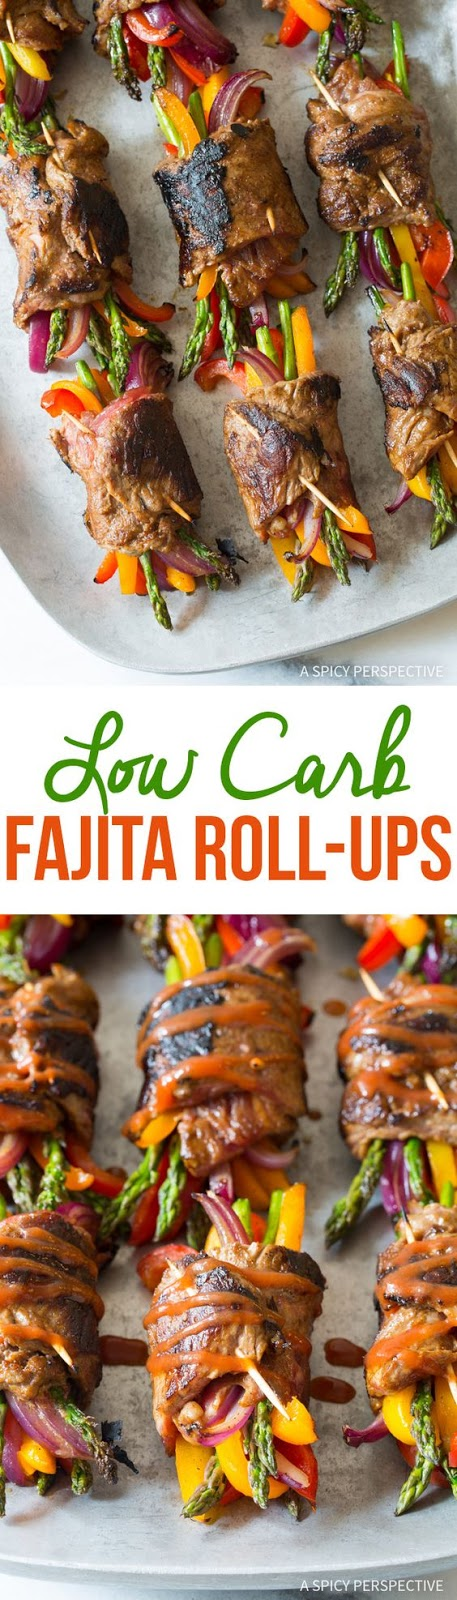 Keto/Low Carb Steak Fajita Roll-Ups Recipe